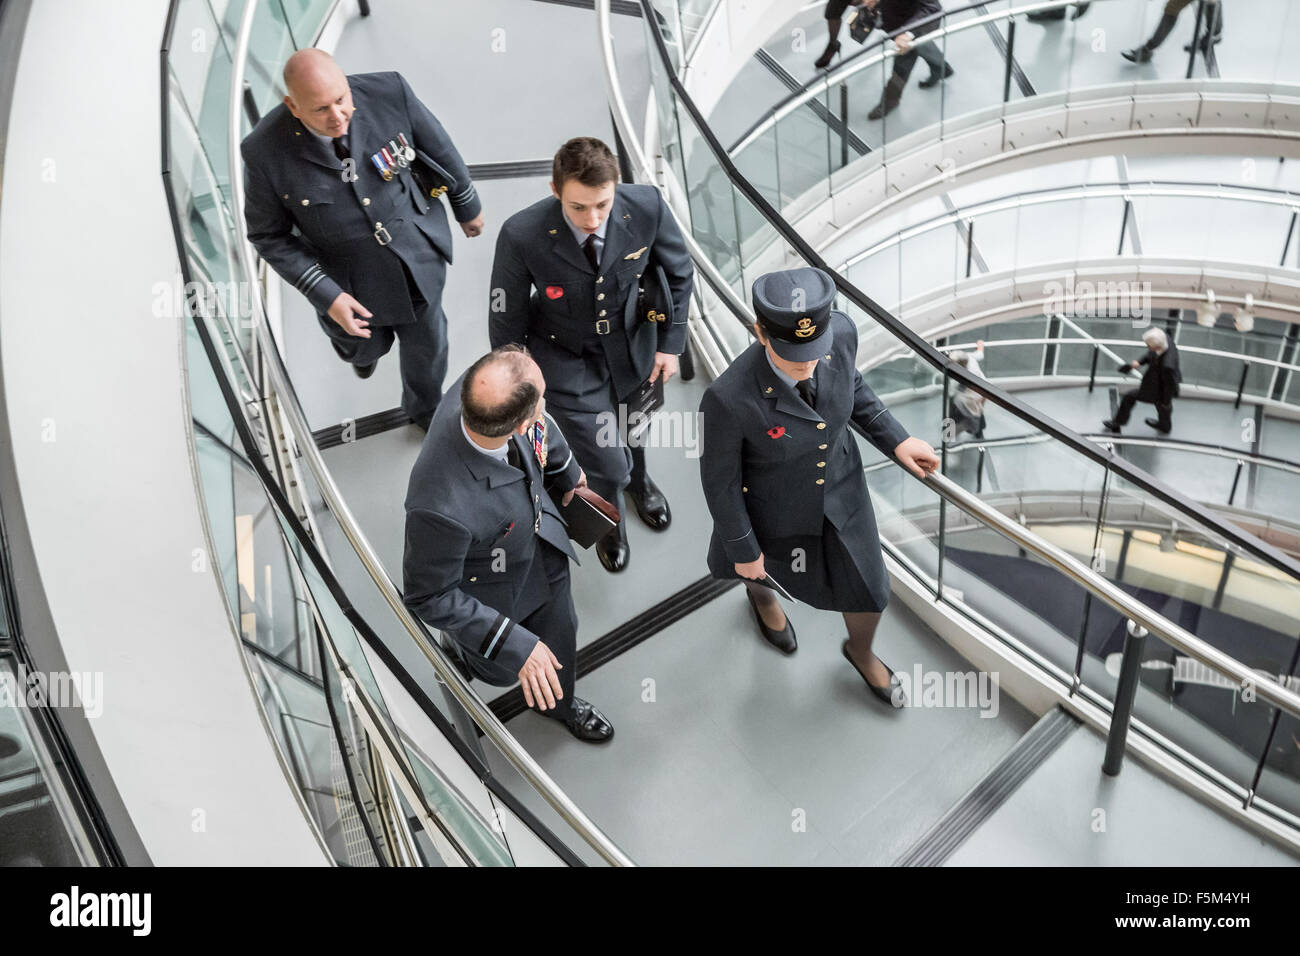 London, UK. 6th November, 2015. GLA Annual Service of Remembrance with Mayor Boris Johnson who joins with representatives - Stock Image